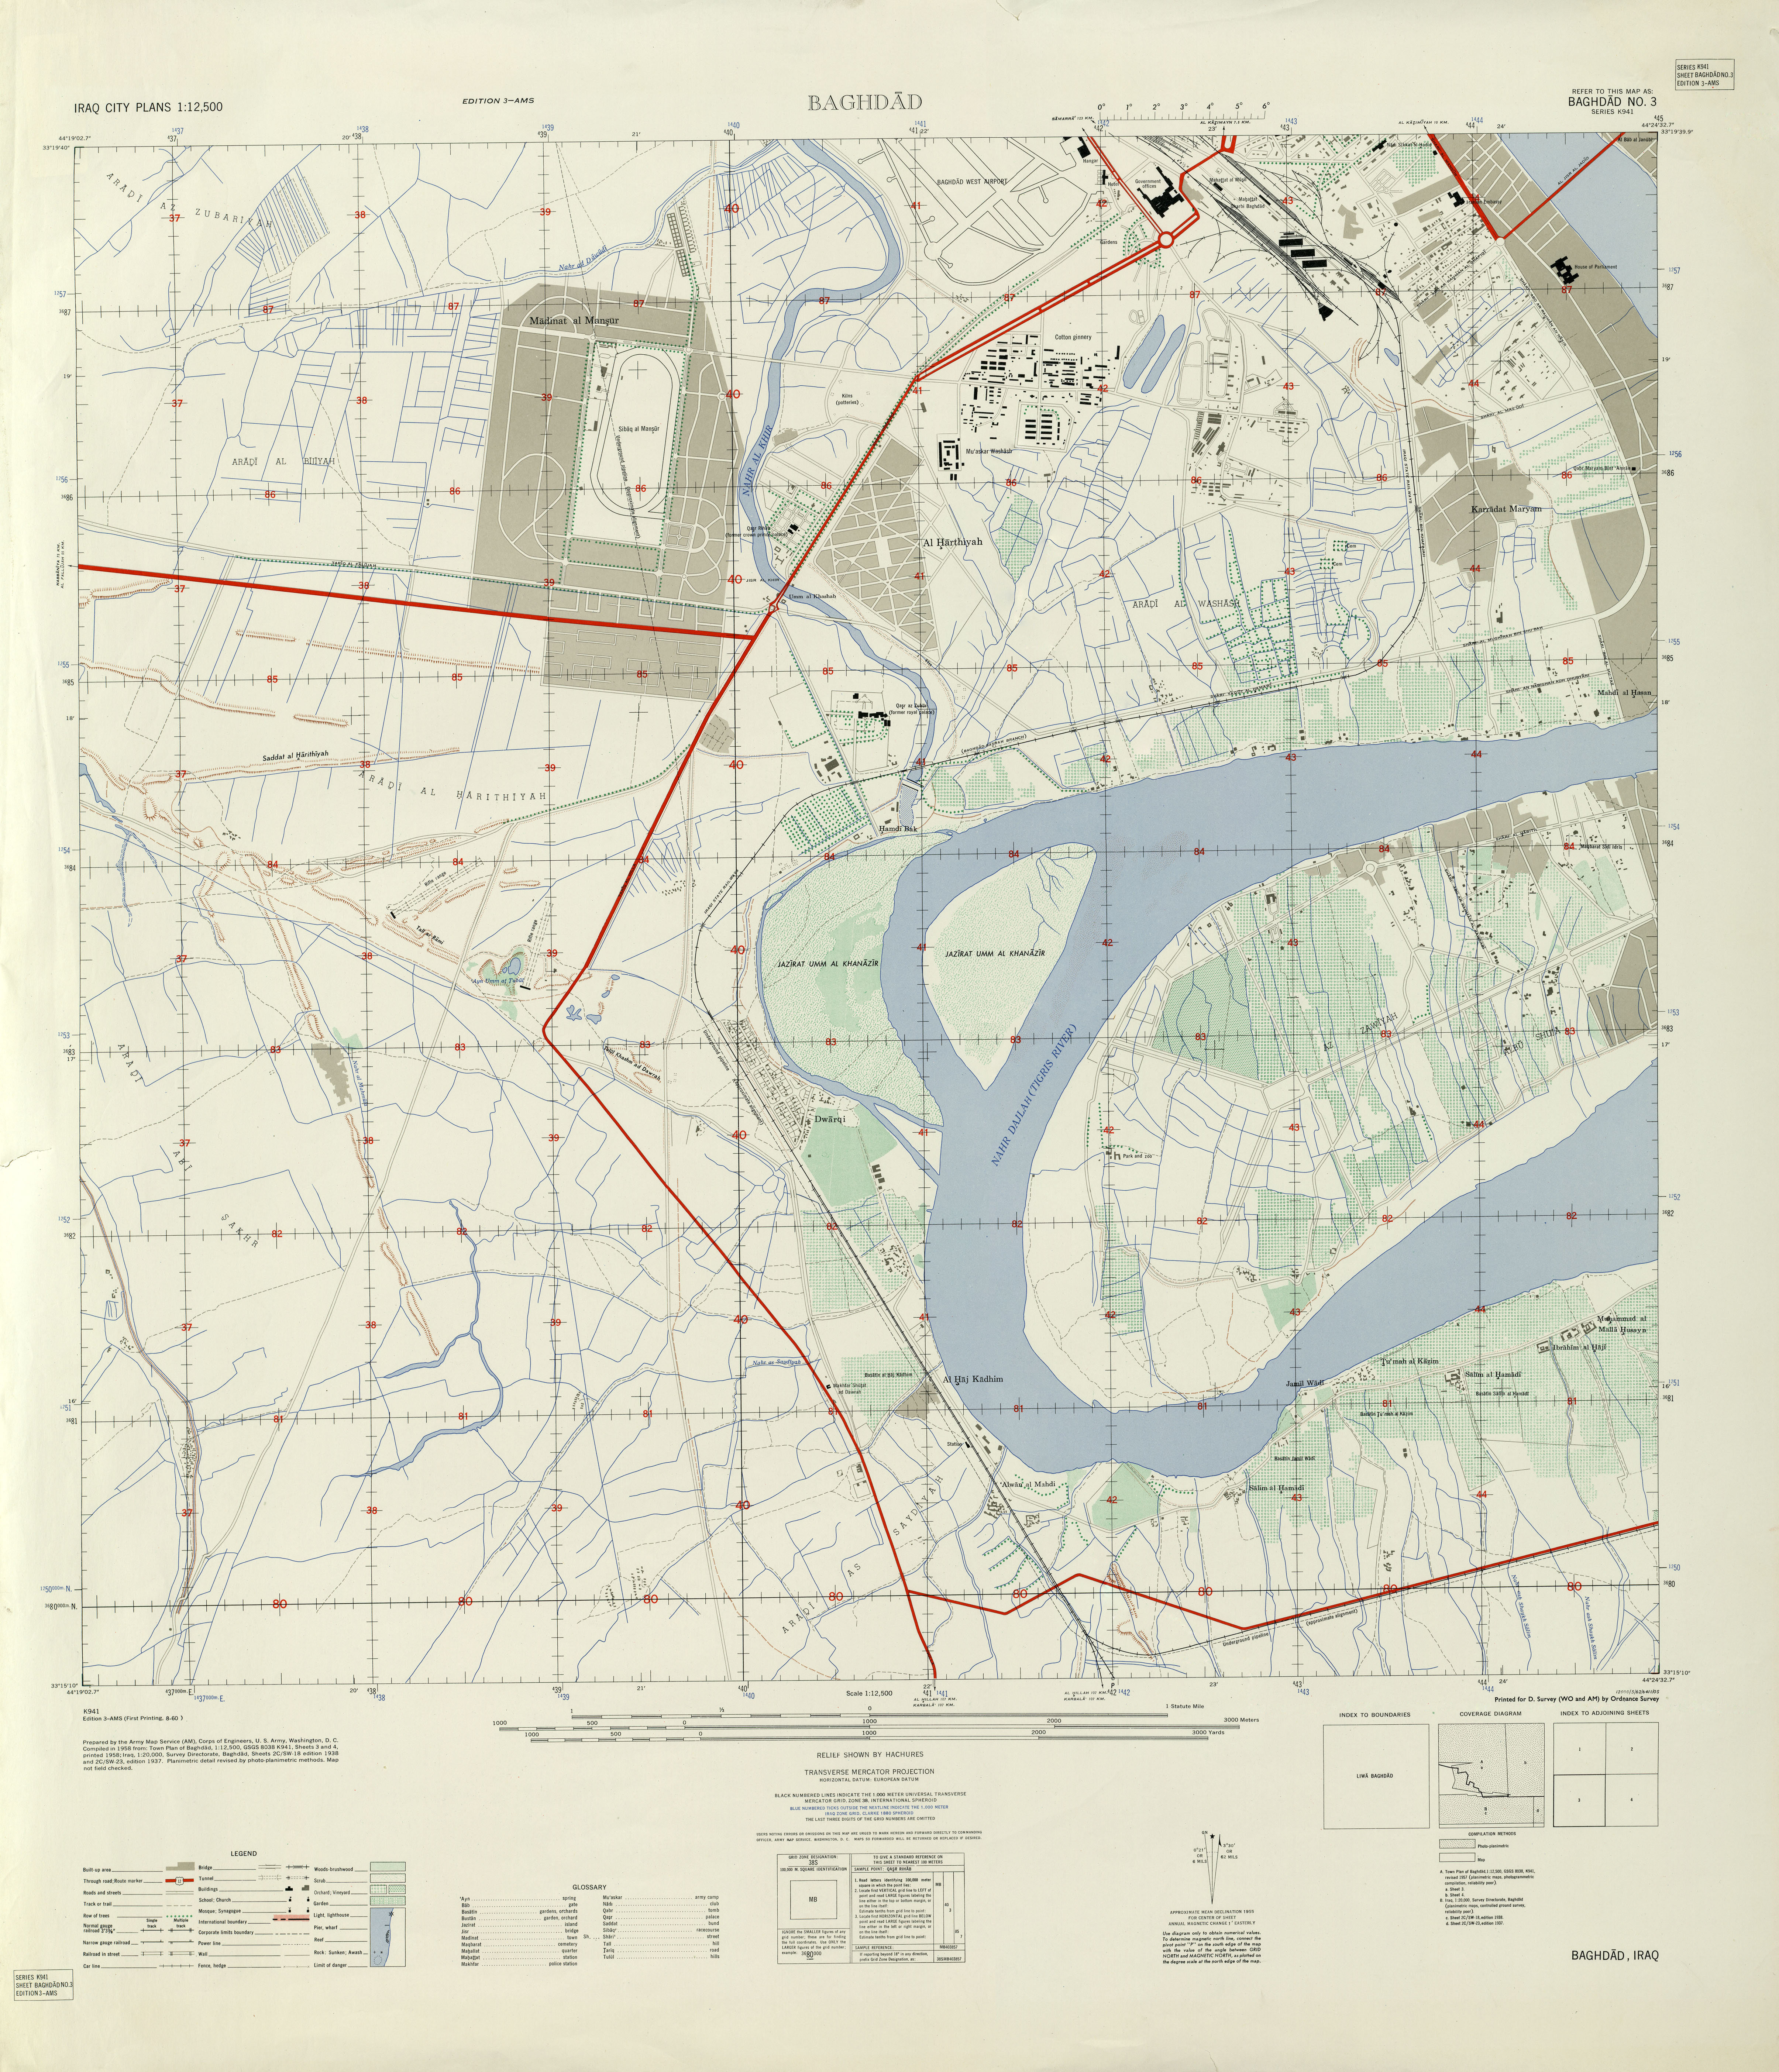 Iraq Maps PerryCastañeda Map Collection UT Library Online - Us military installation road map